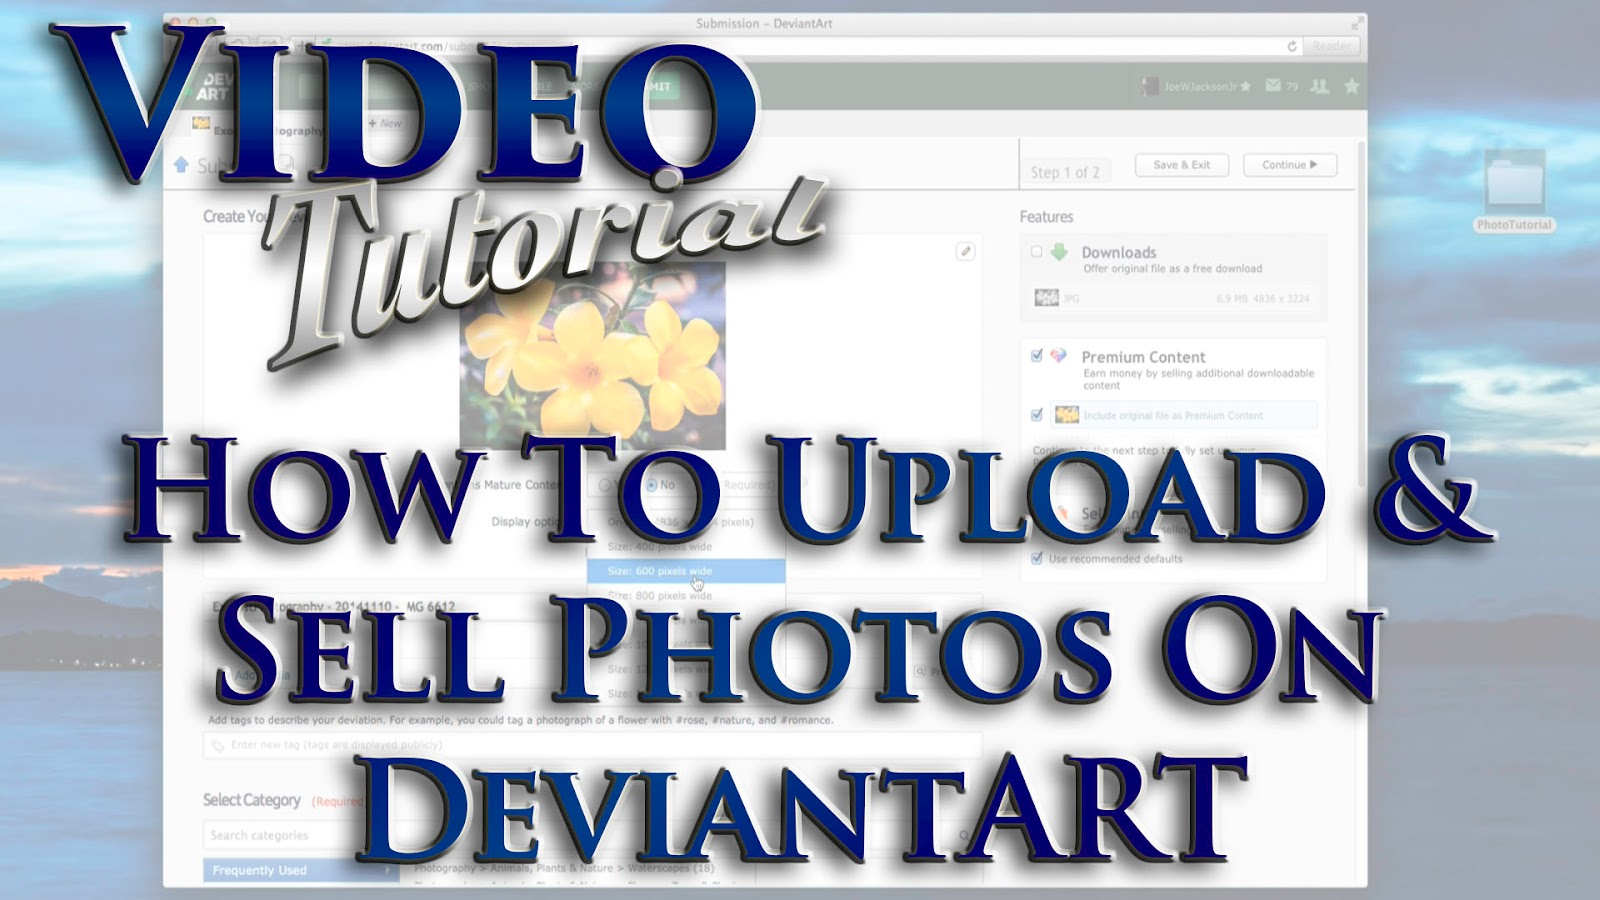 Learn How To Upload & Sell Photos On DeviantART